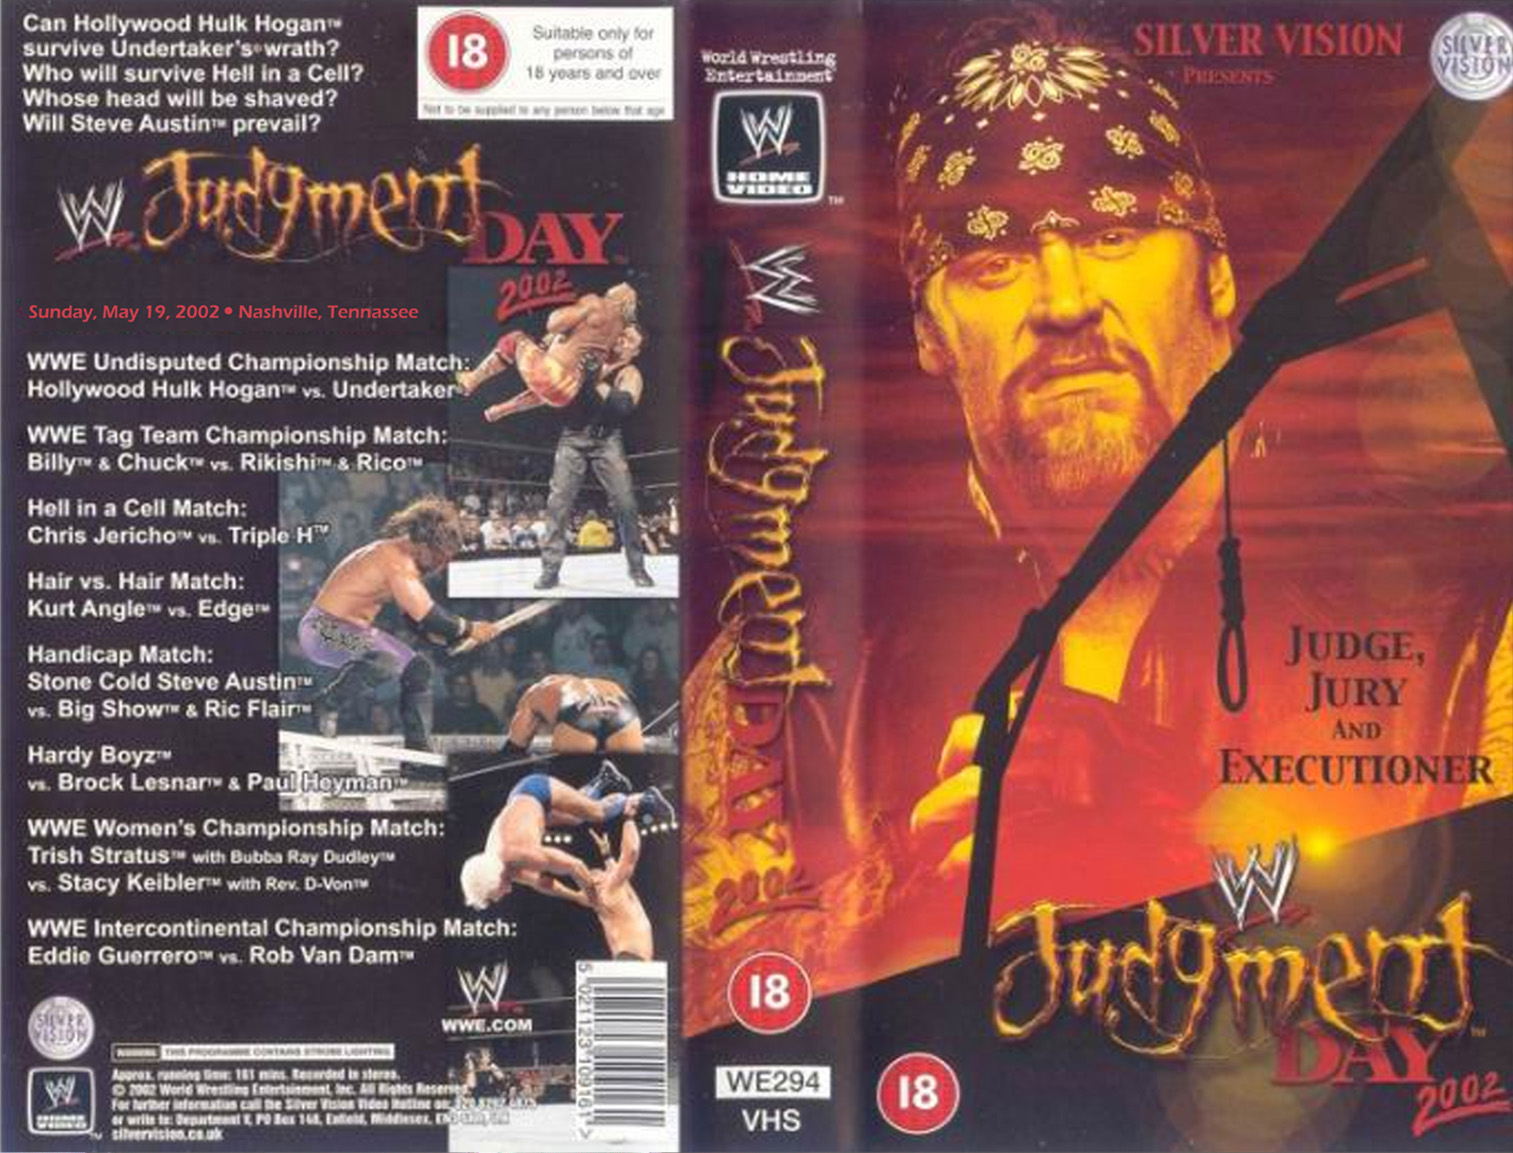 judgmentday2002